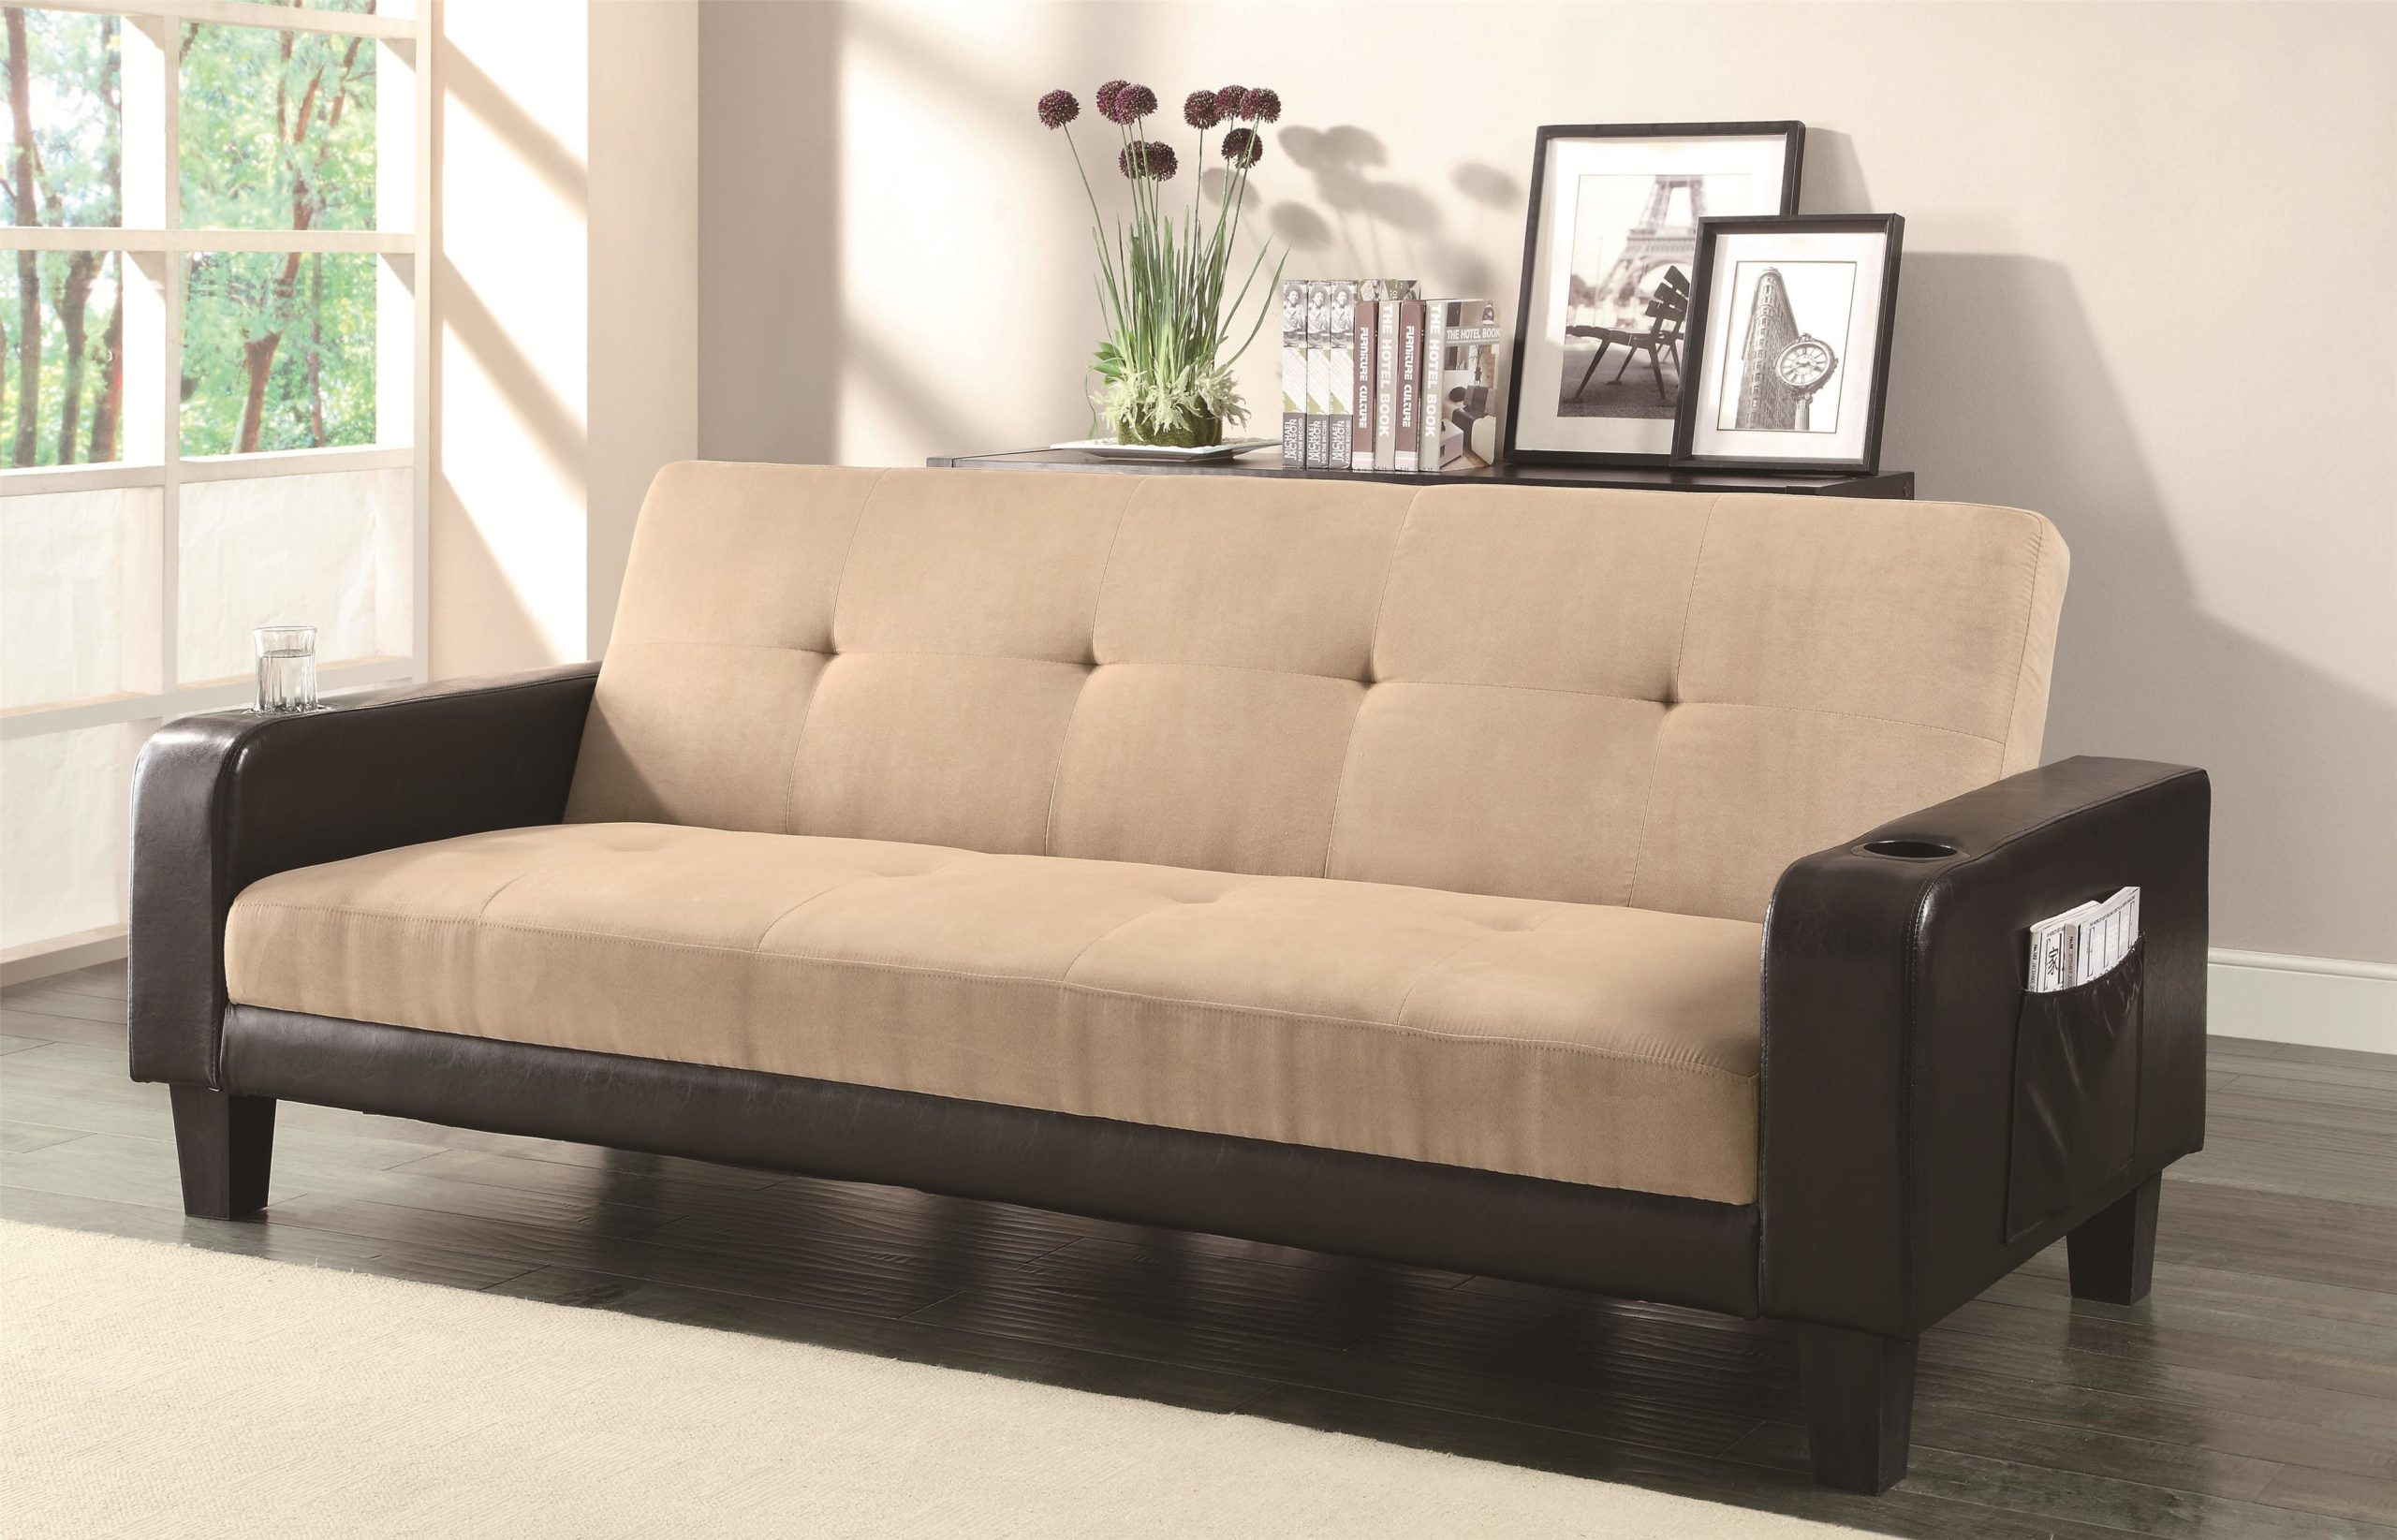 Contemporary Adjustable Sofa with Cup Holders and Magazine Storage